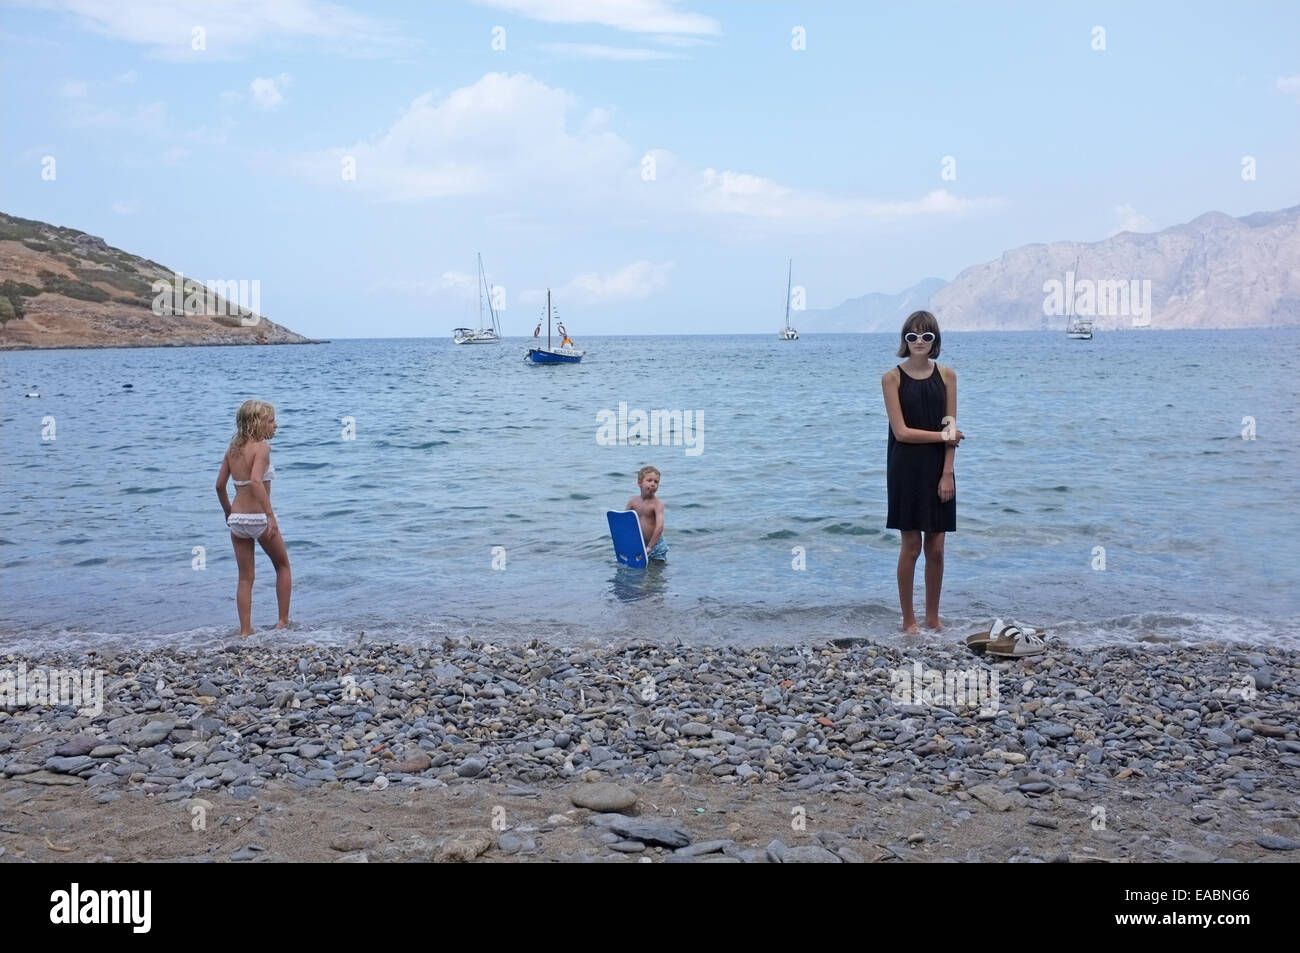 A teenage girl on holiday in Crete watched by two children - Stock Image